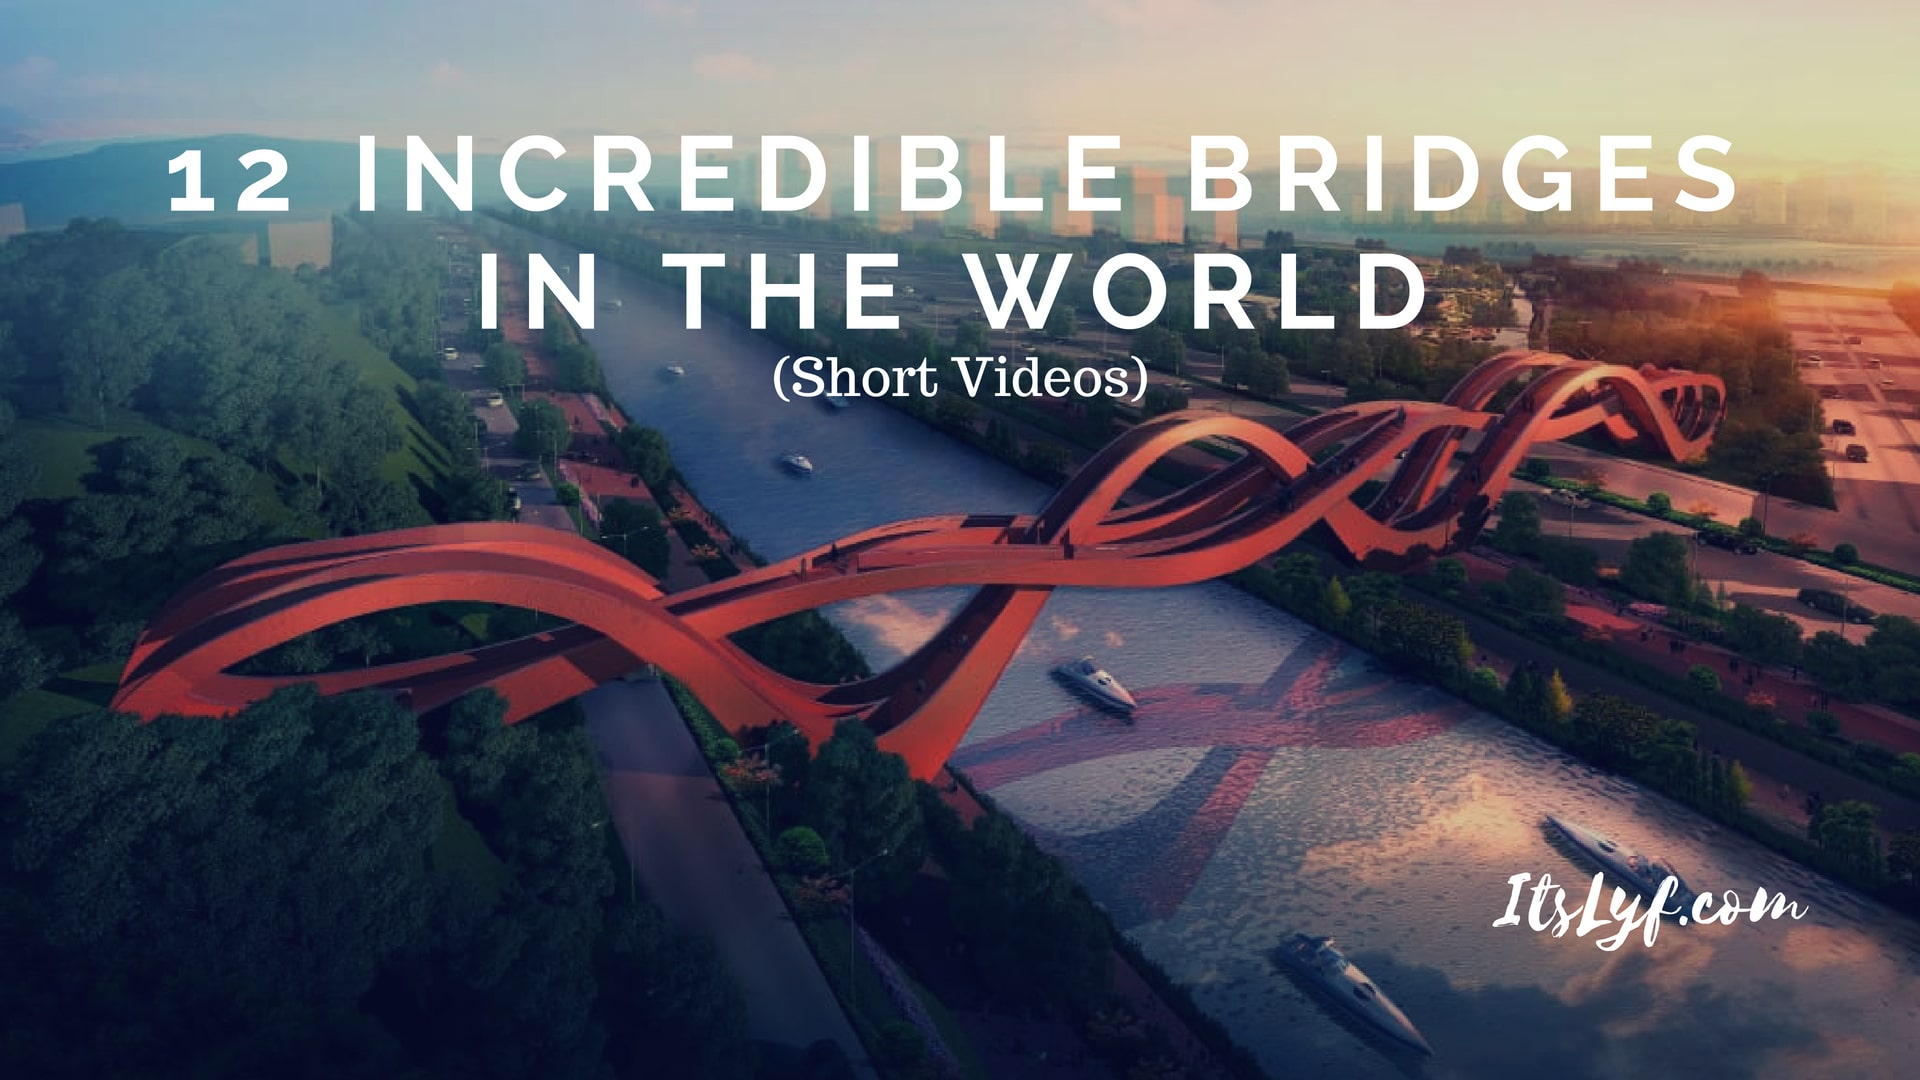 Incredible Bridges in the World